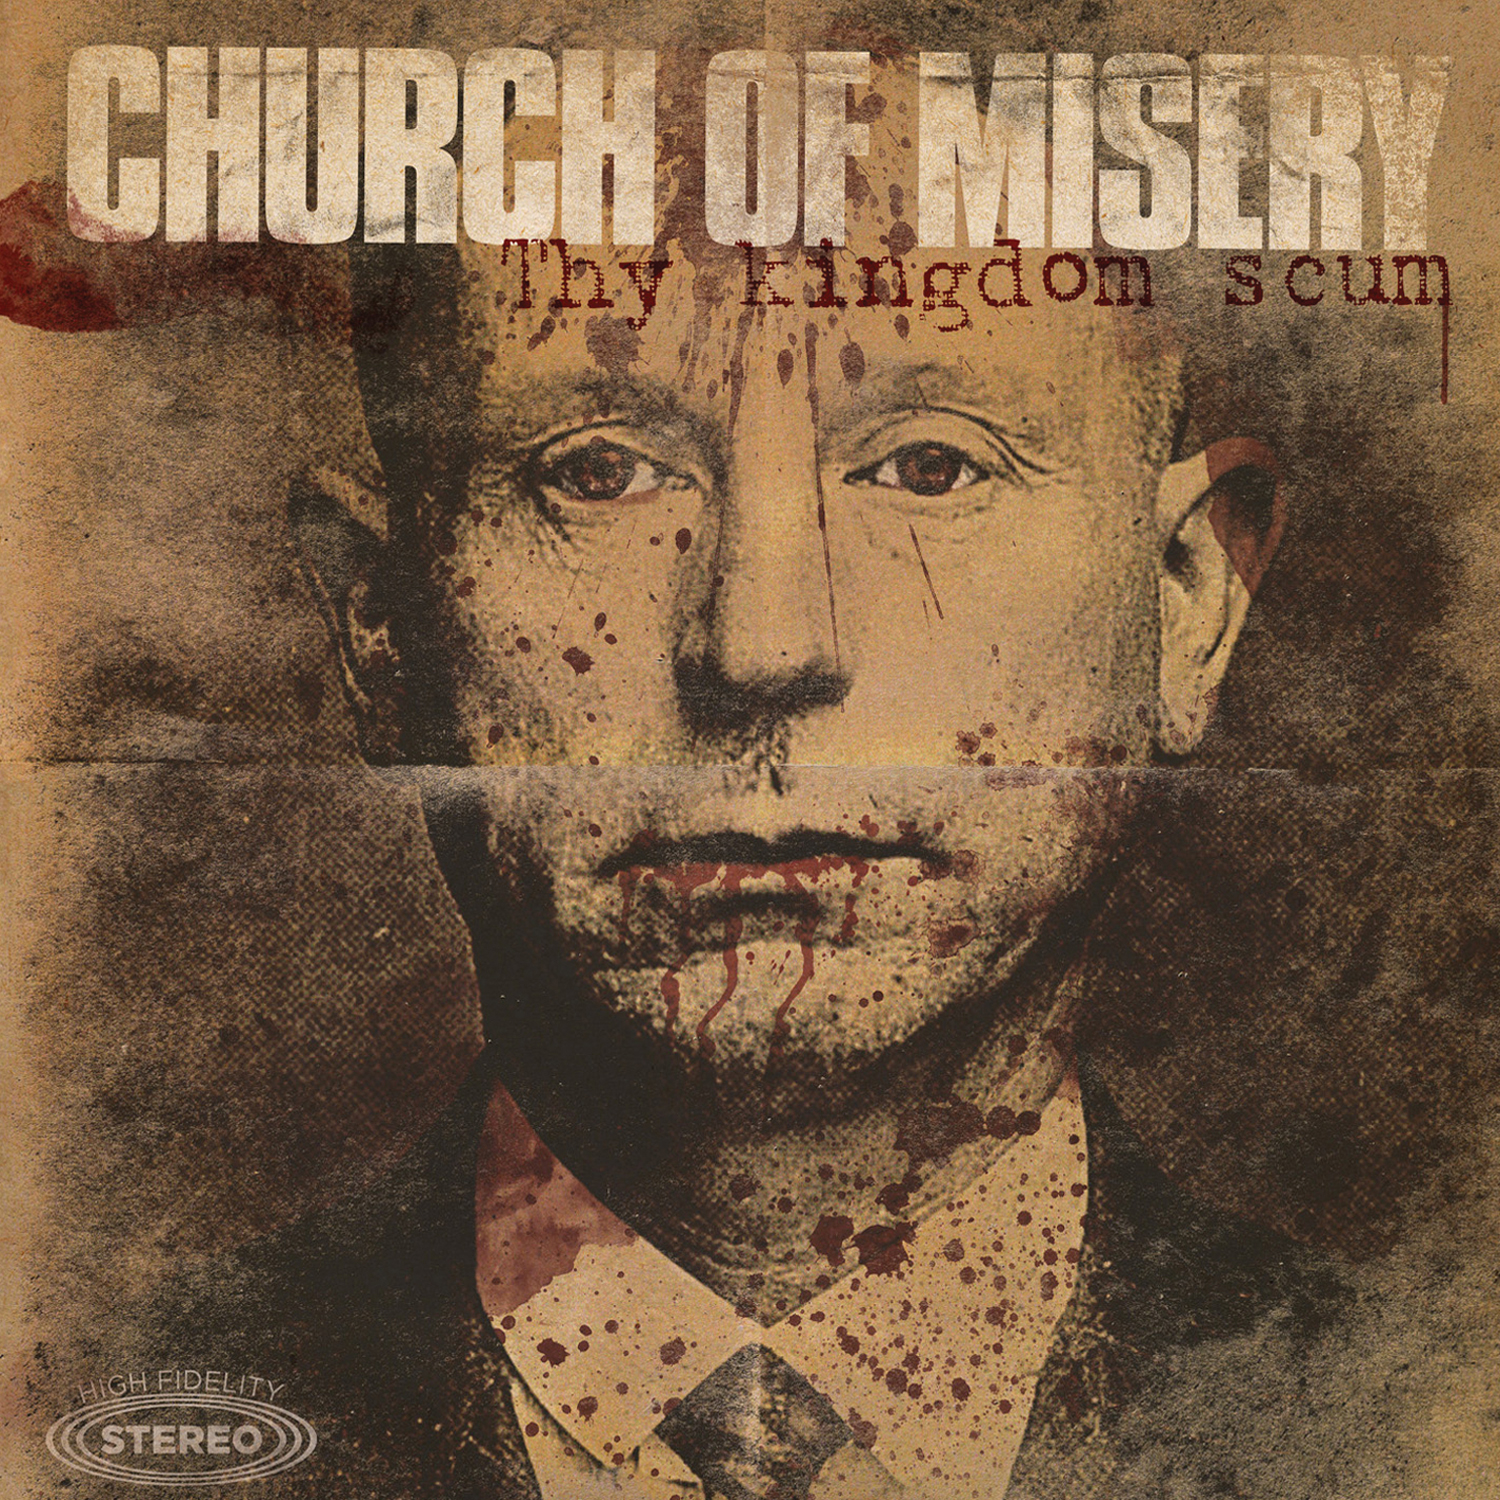 ¿Qué Estás Escuchando? - Página 3 Church-of-misery-thy-kingdom-scum